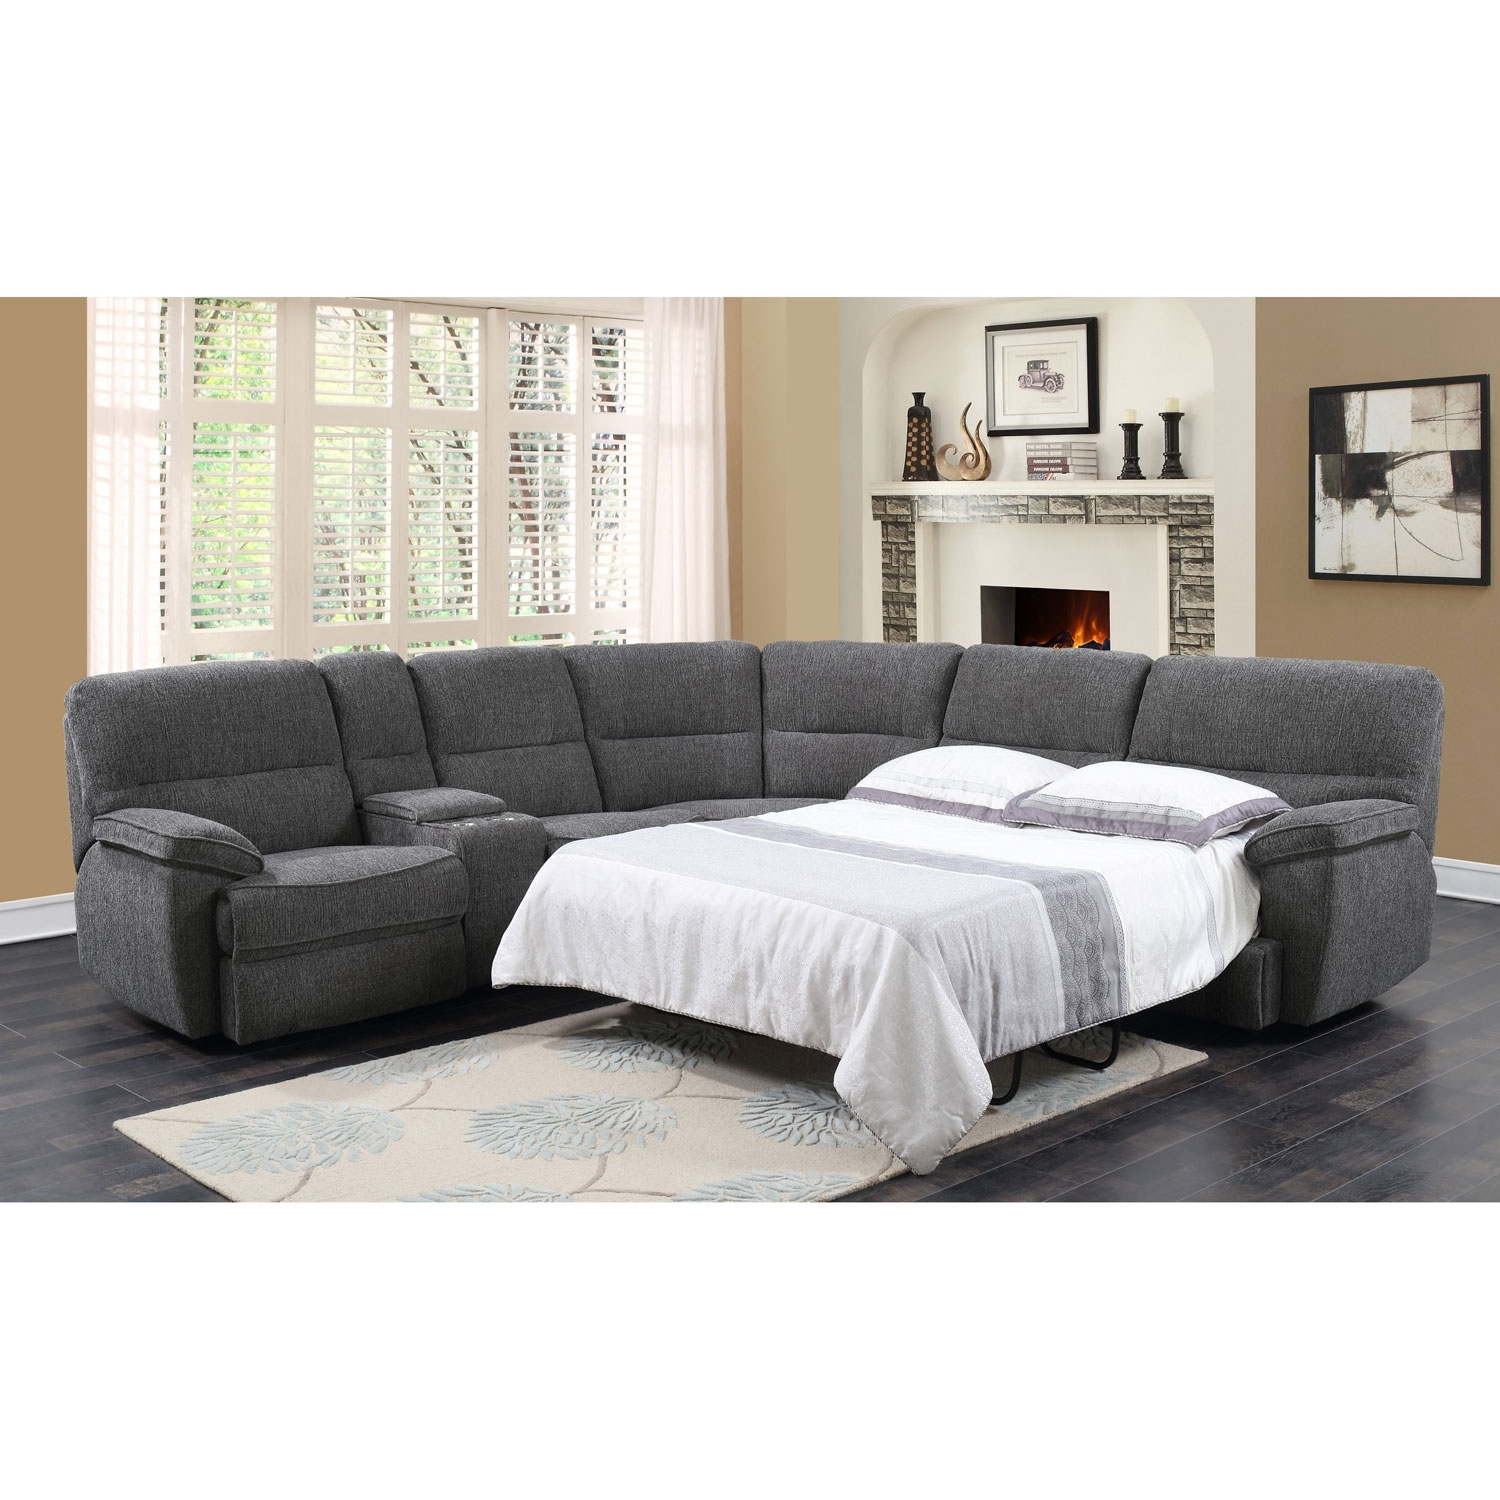 Emerald Home Furnishings Emerald Home Aurora 3 Piece Sleeper intended for Aurora 2 Piece Sectionals (Image 17 of 30)